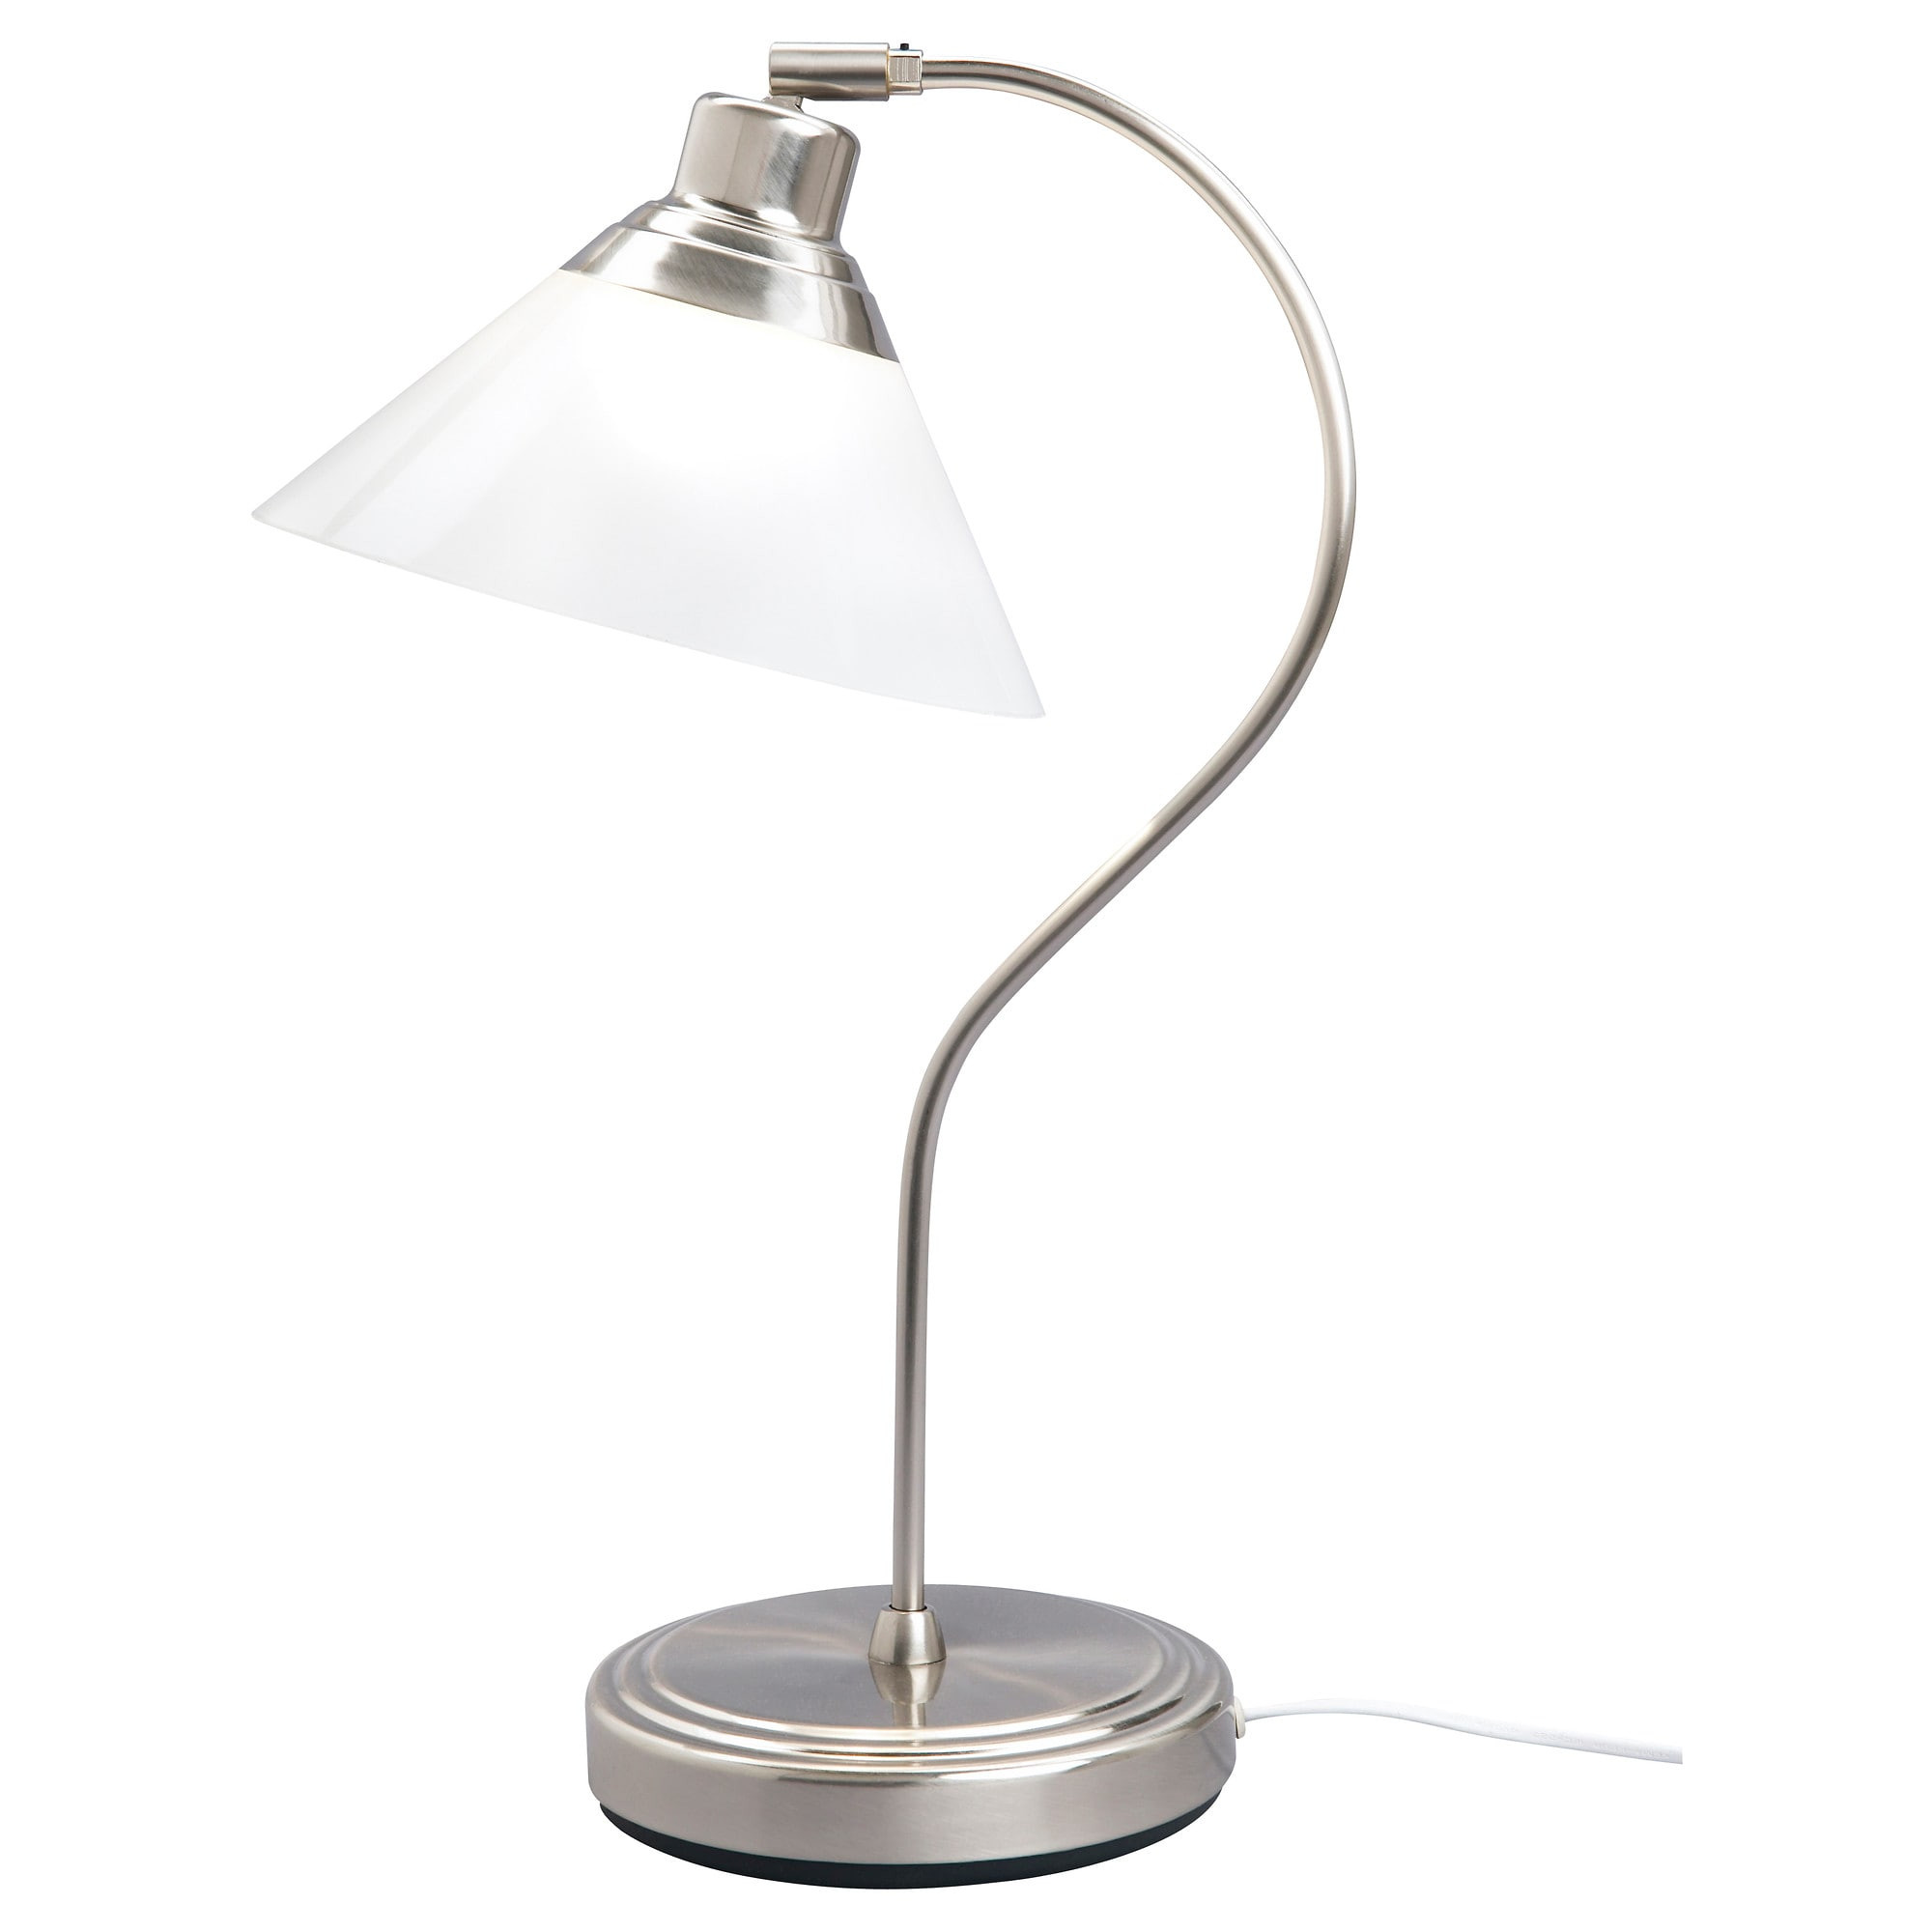 Best ideas about Desk Lamp Ikea . Save or Pin IKEA Now.